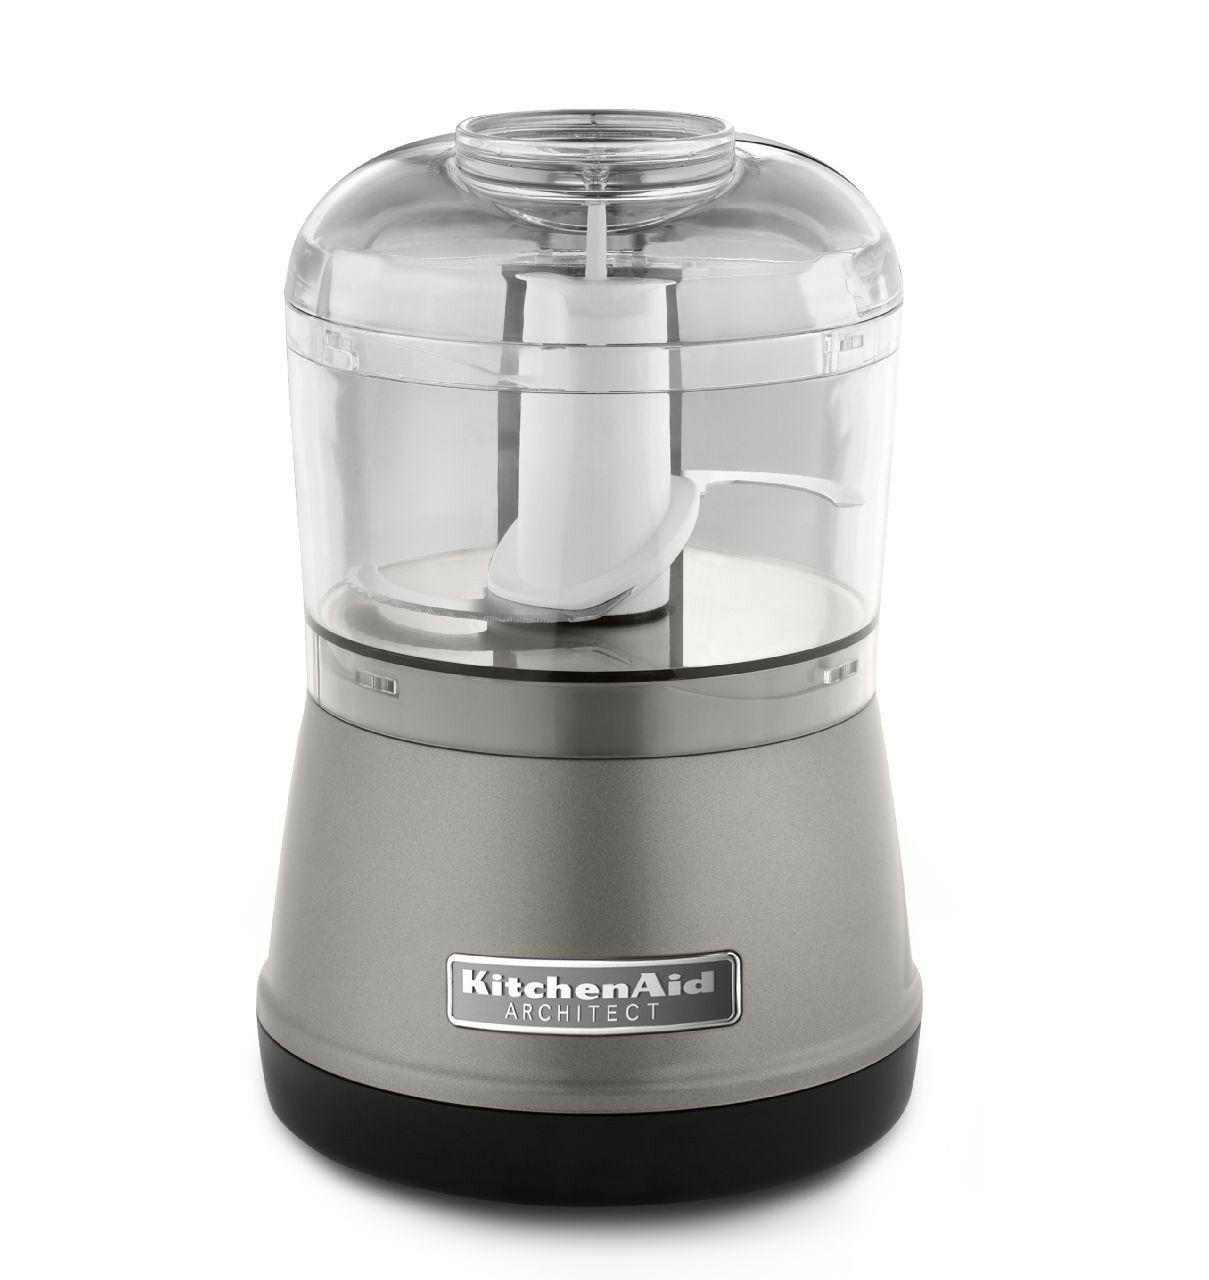 processor ebay cancel p s aid global res kitchen inflowcomponent content food kitchenaid inflow